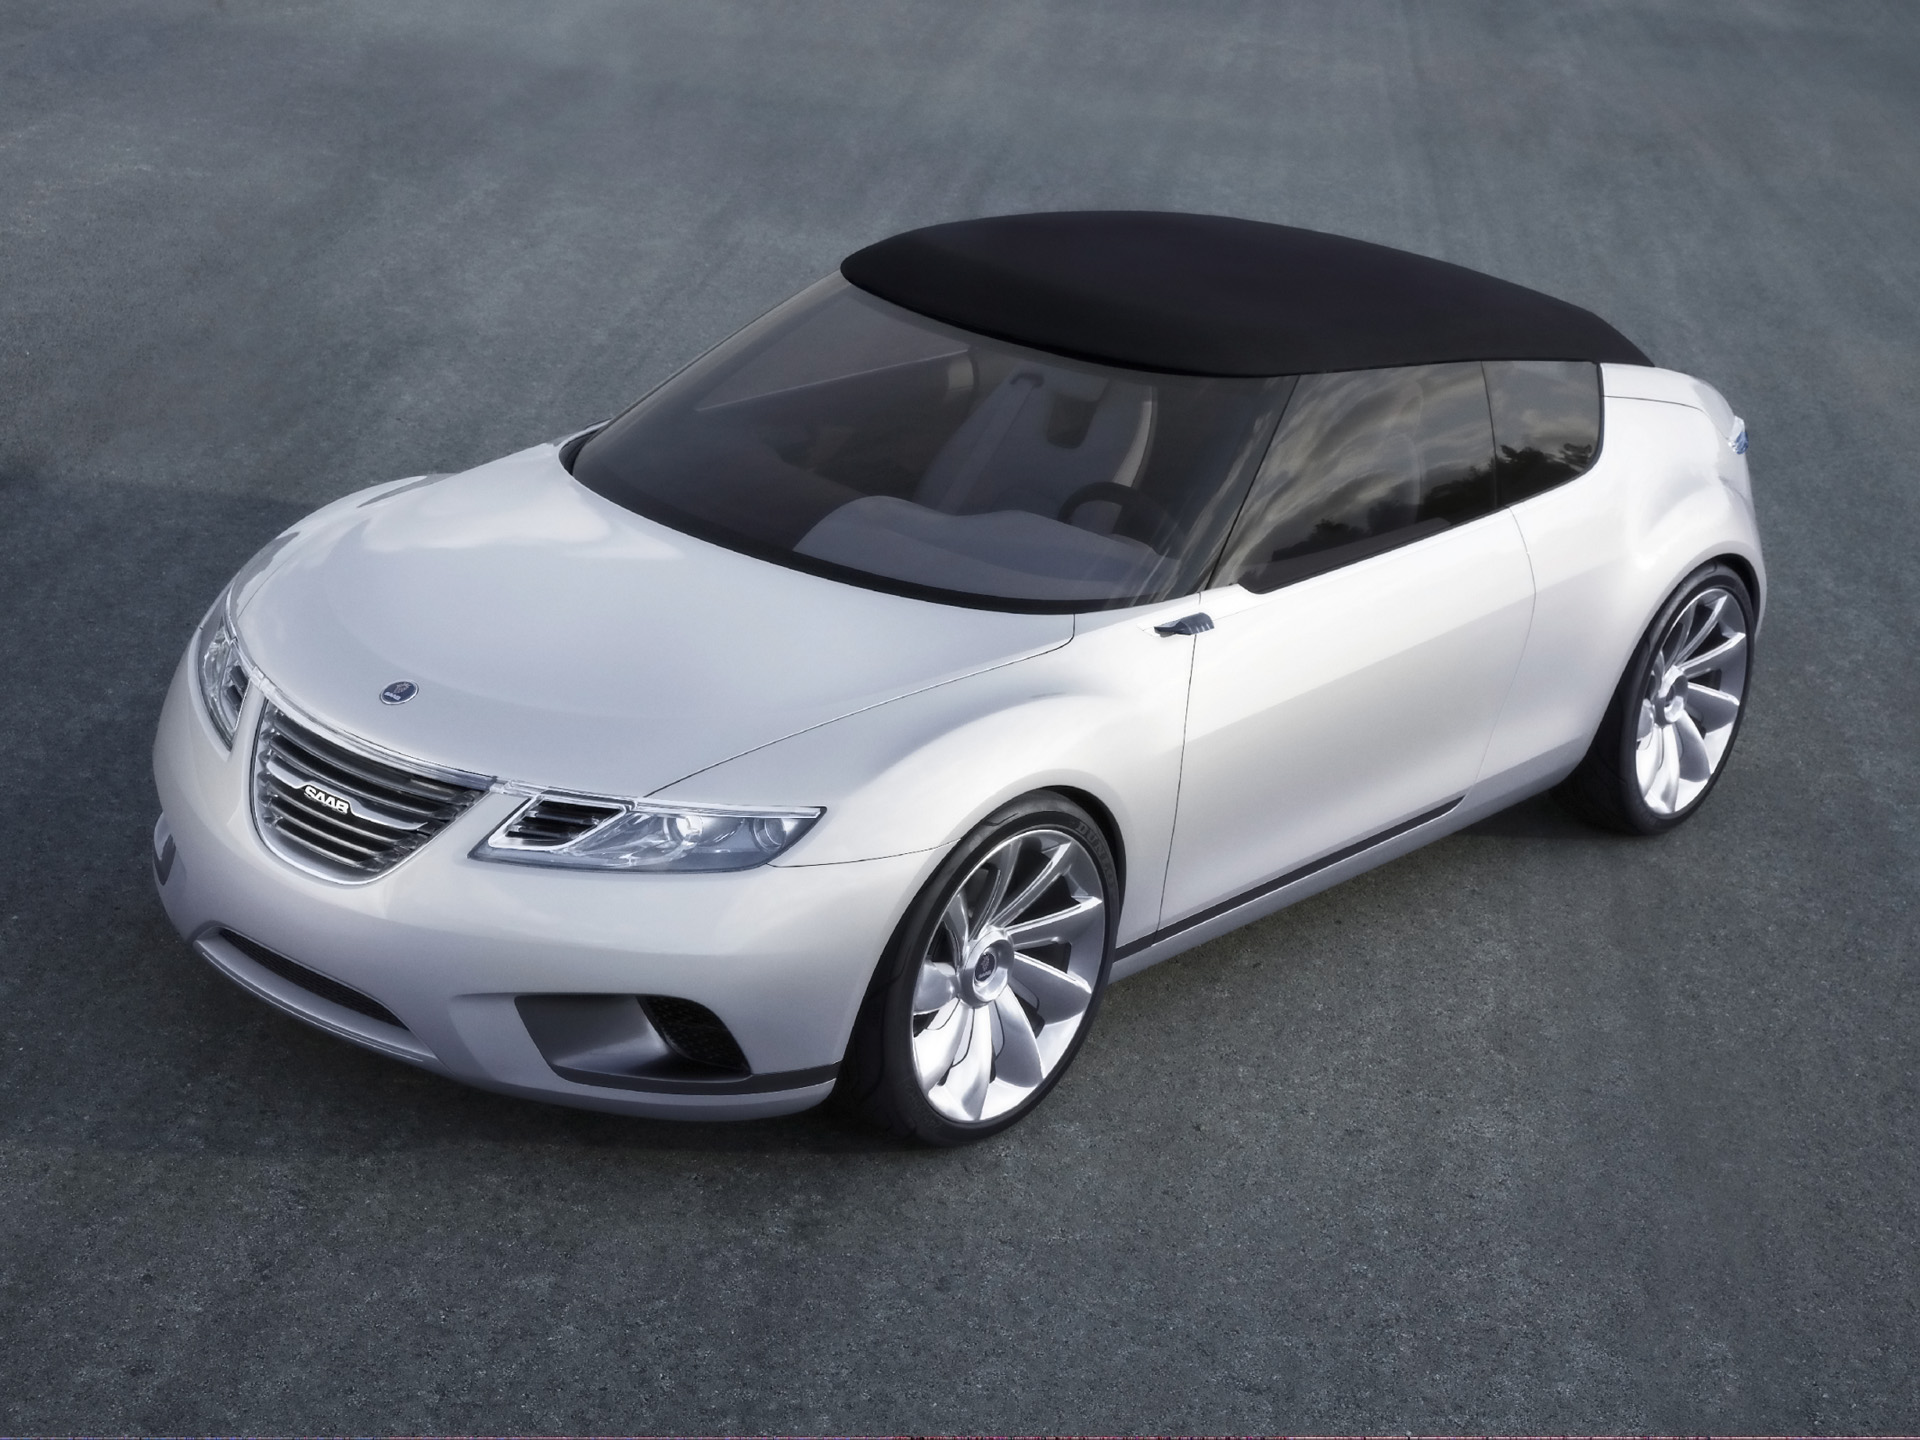 Saab 9-X Air Concept photo #1